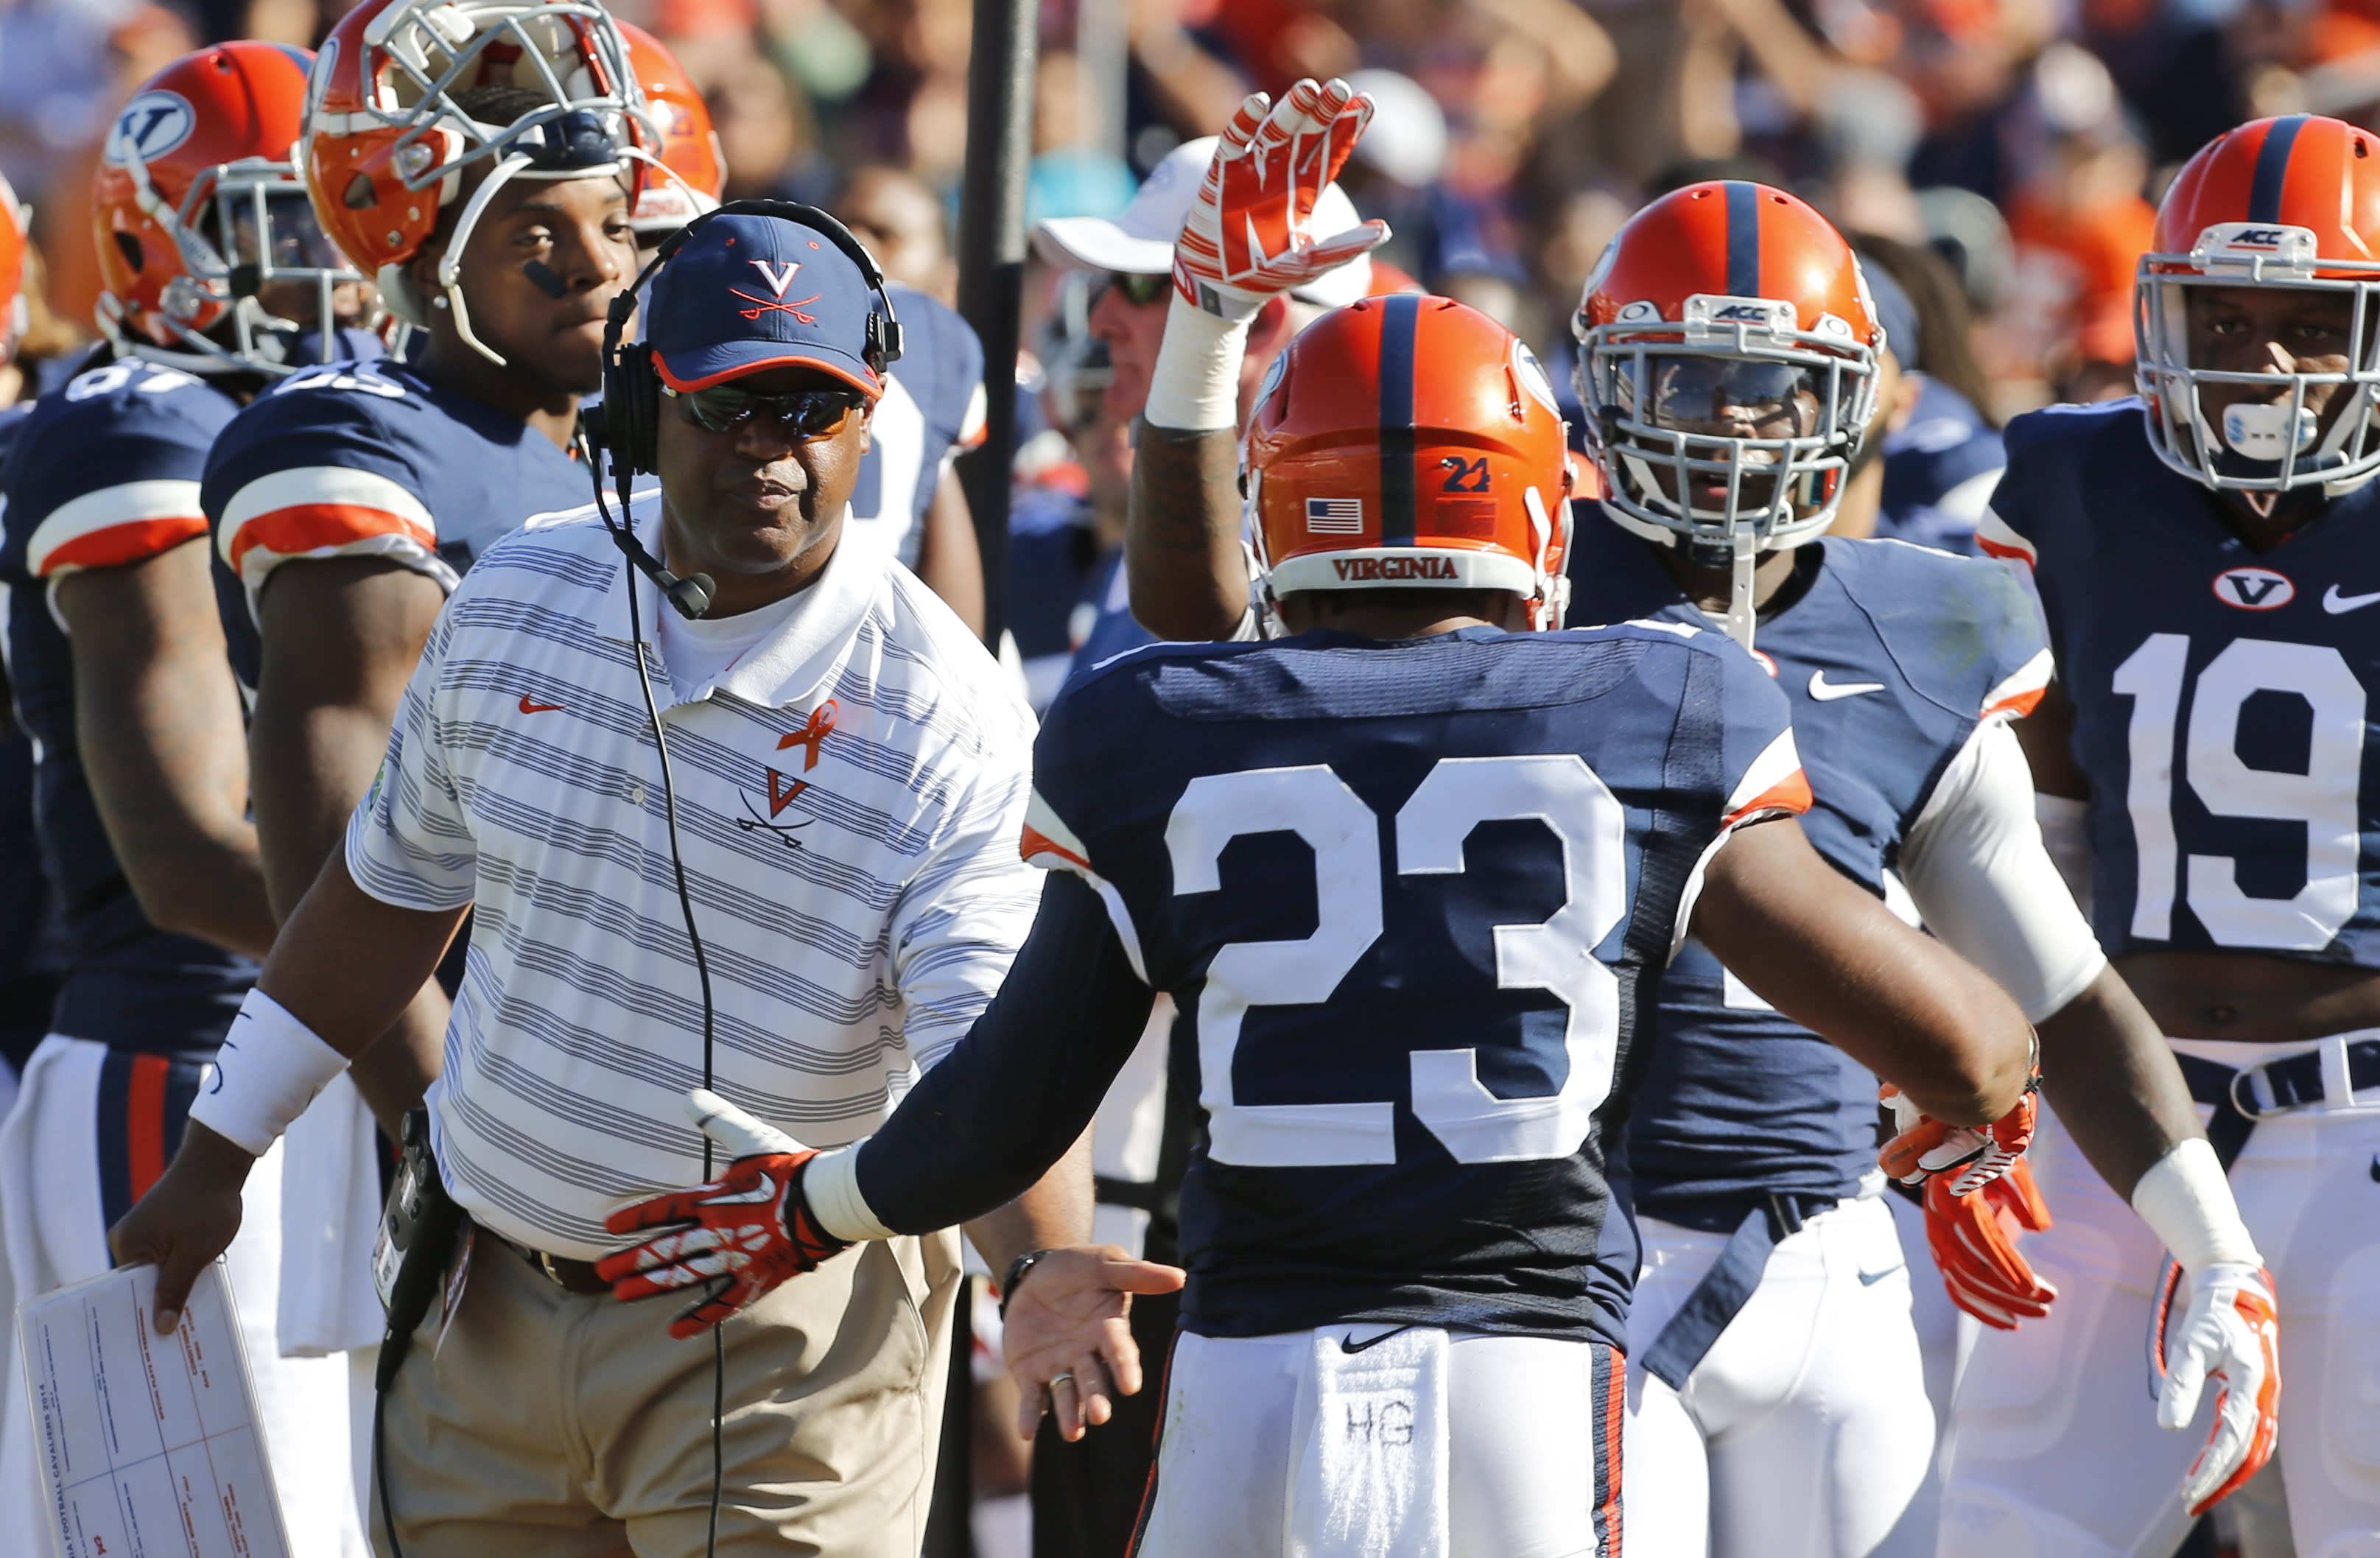 Mike London resigns at Virginia after six seasons